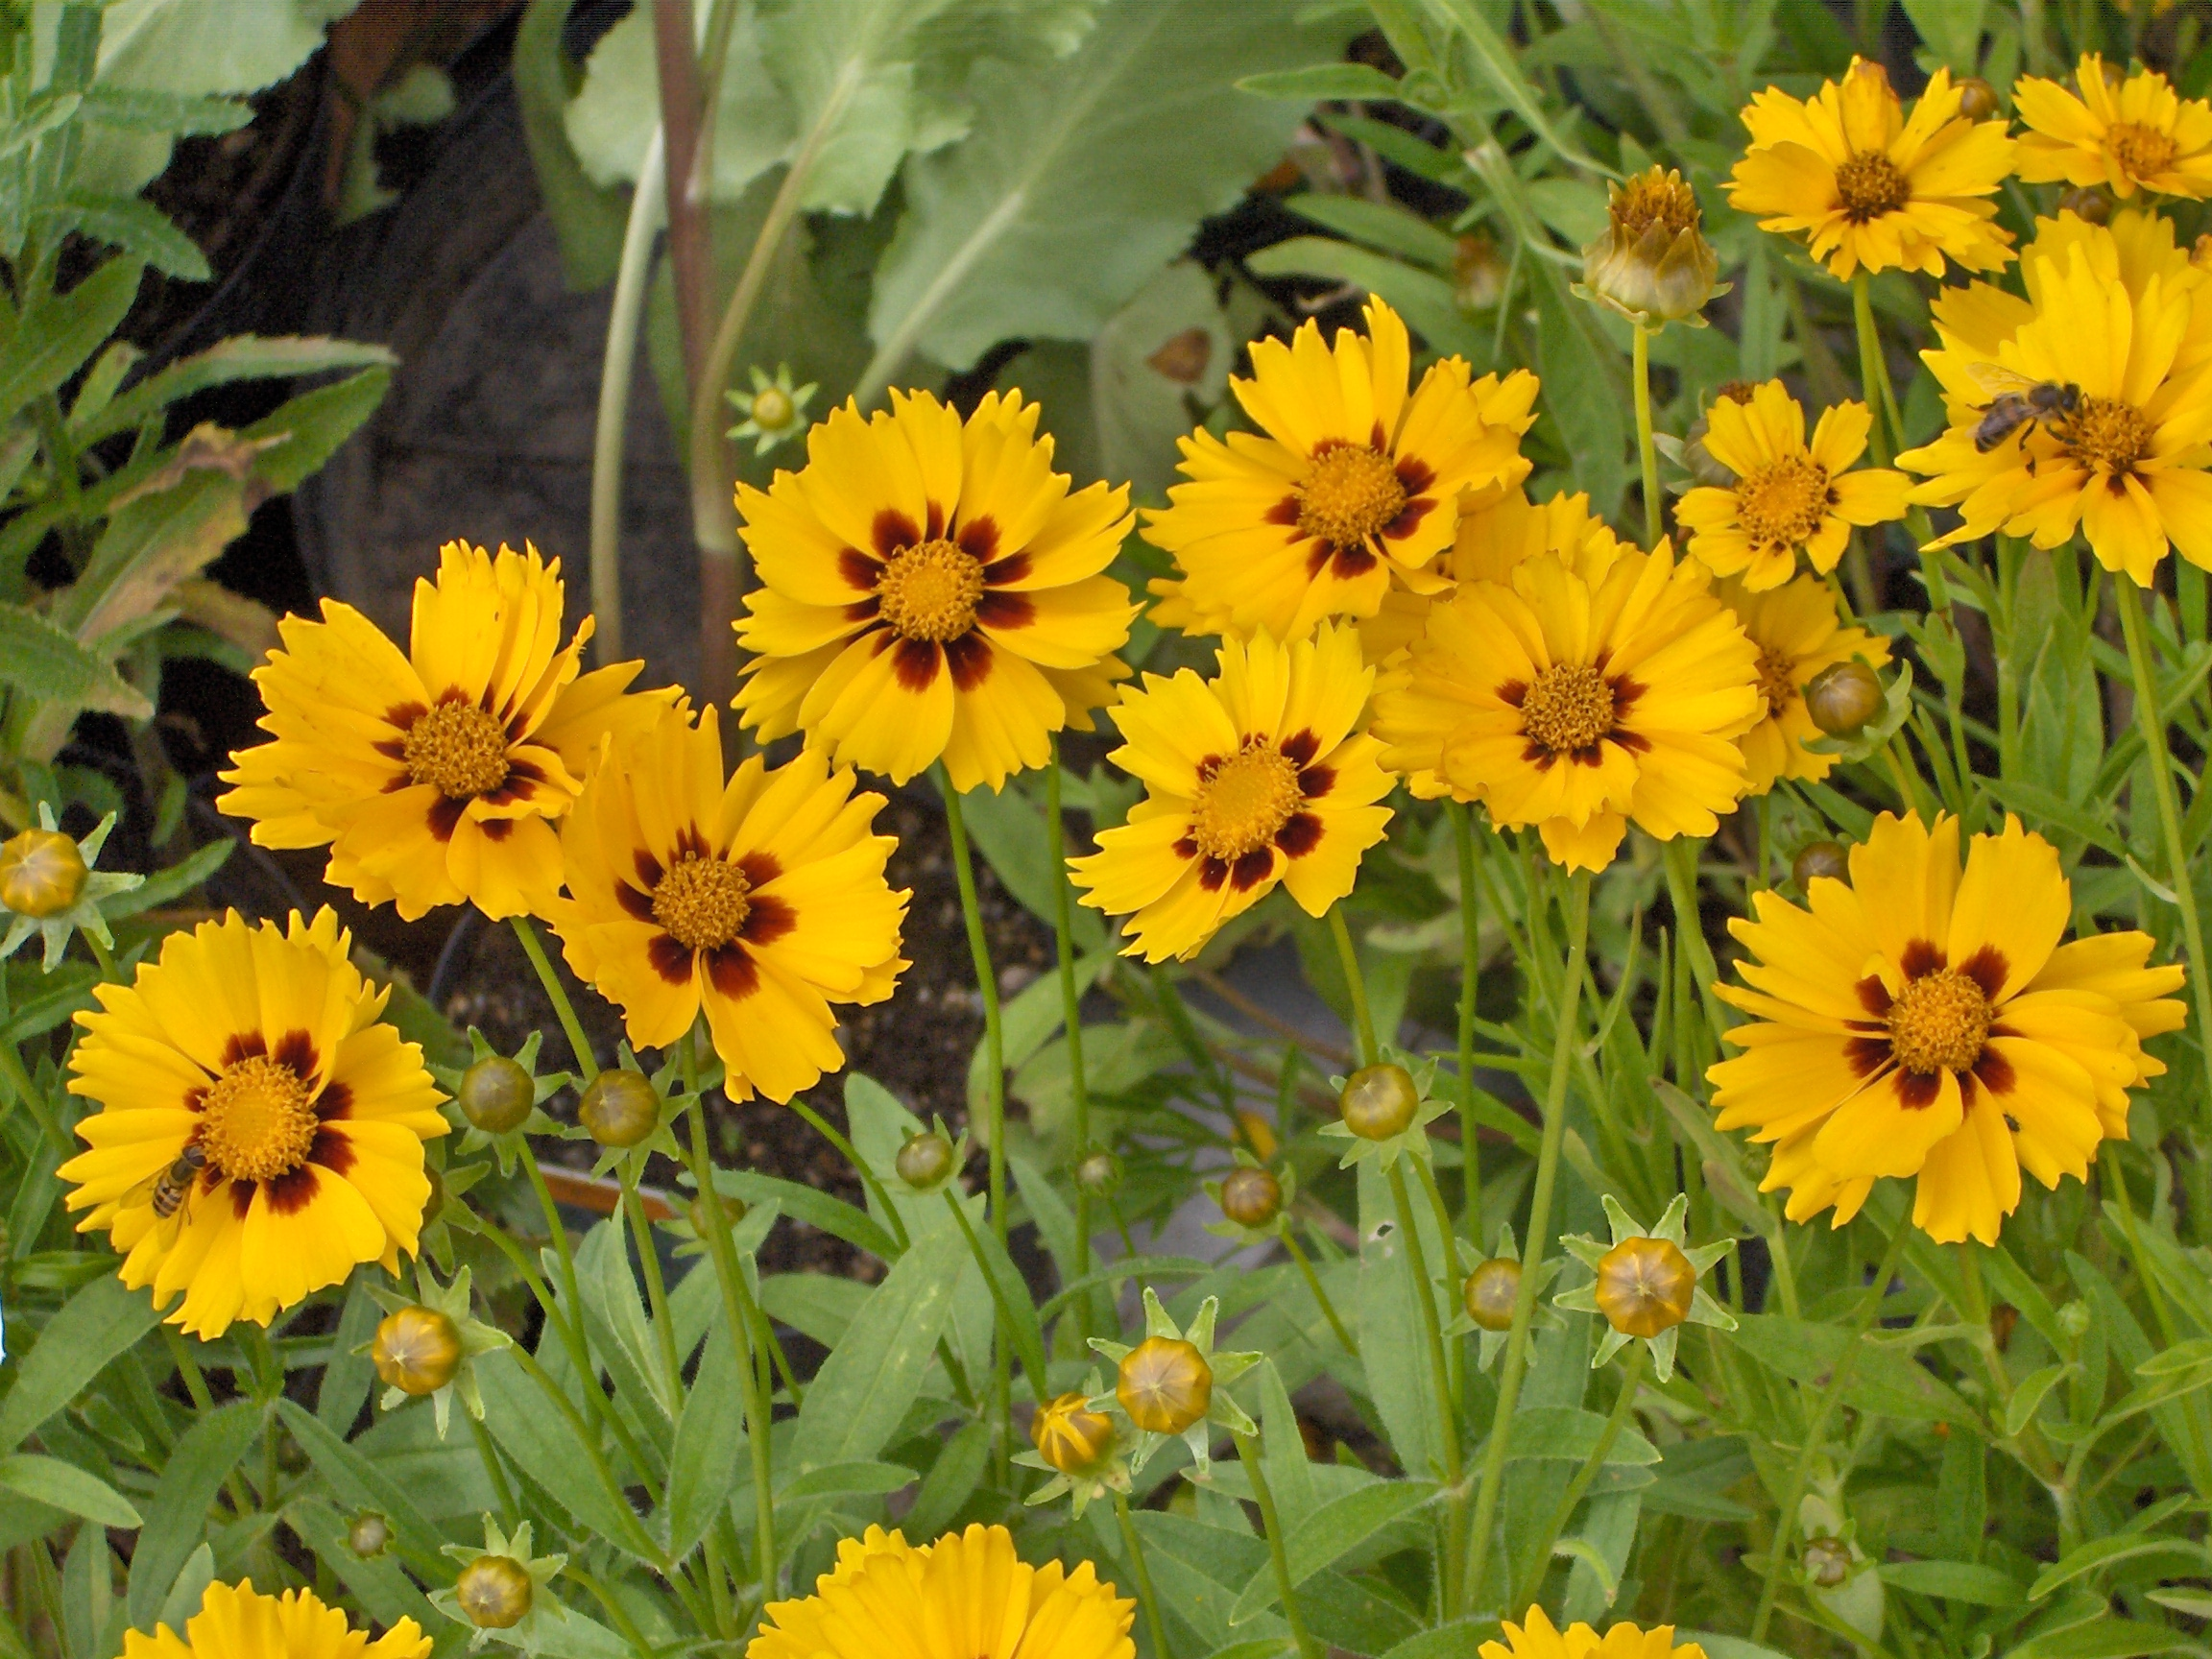 6 drought tolerant plants for your property in Chico CA